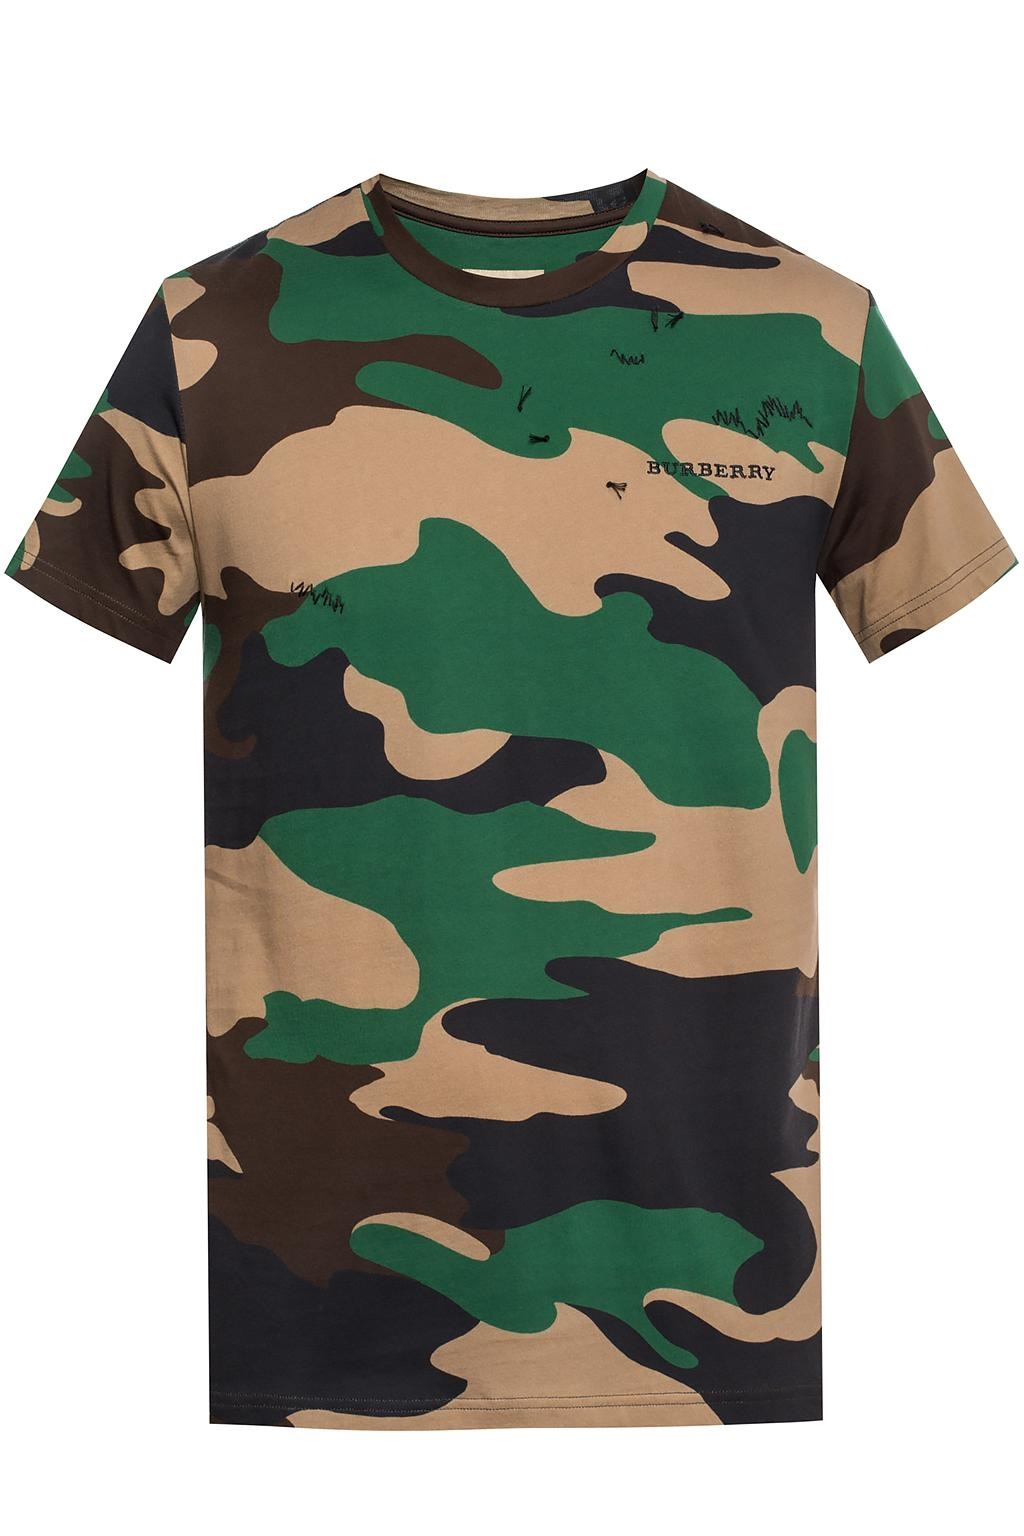 Burberry Camouflage Print Cotton T-shirt In Green